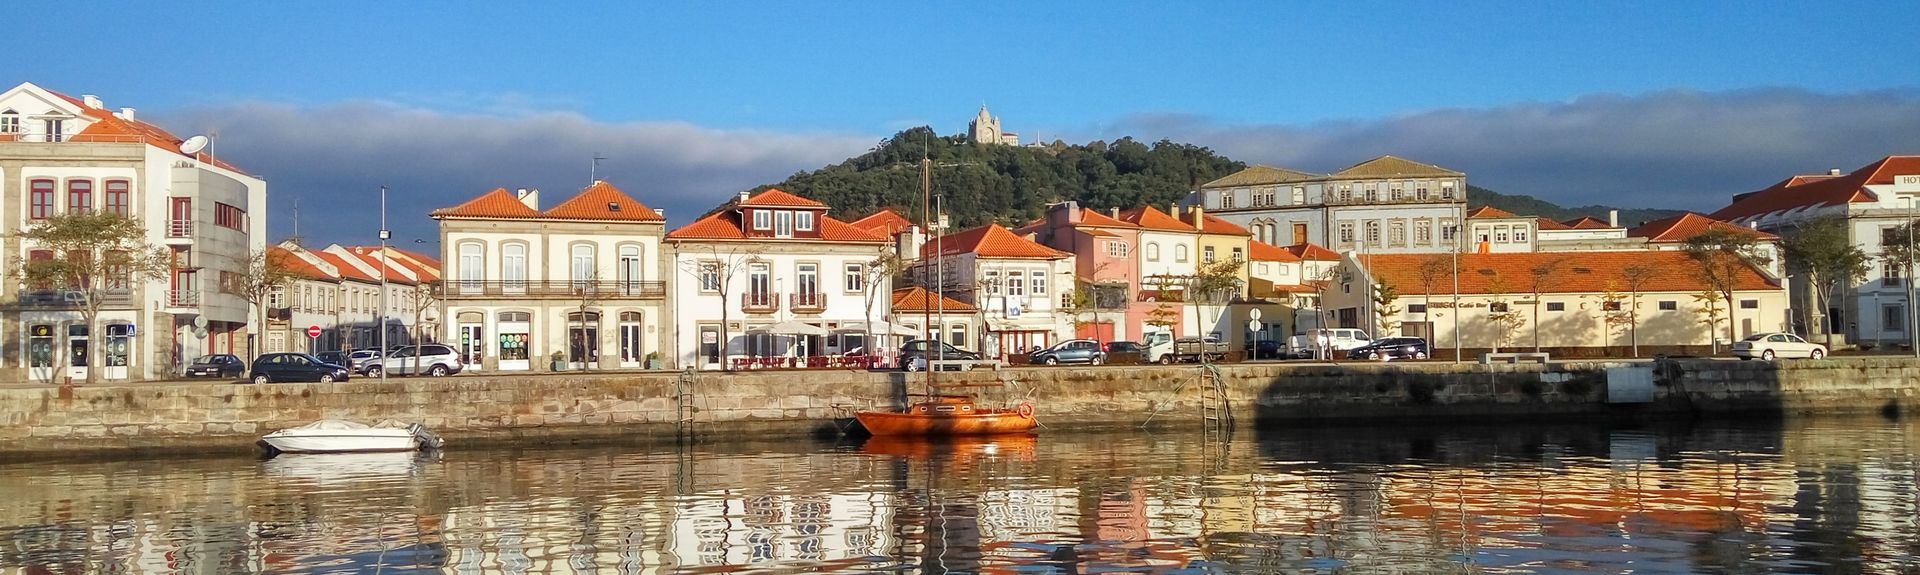 Viana do Castelo, Portogallo